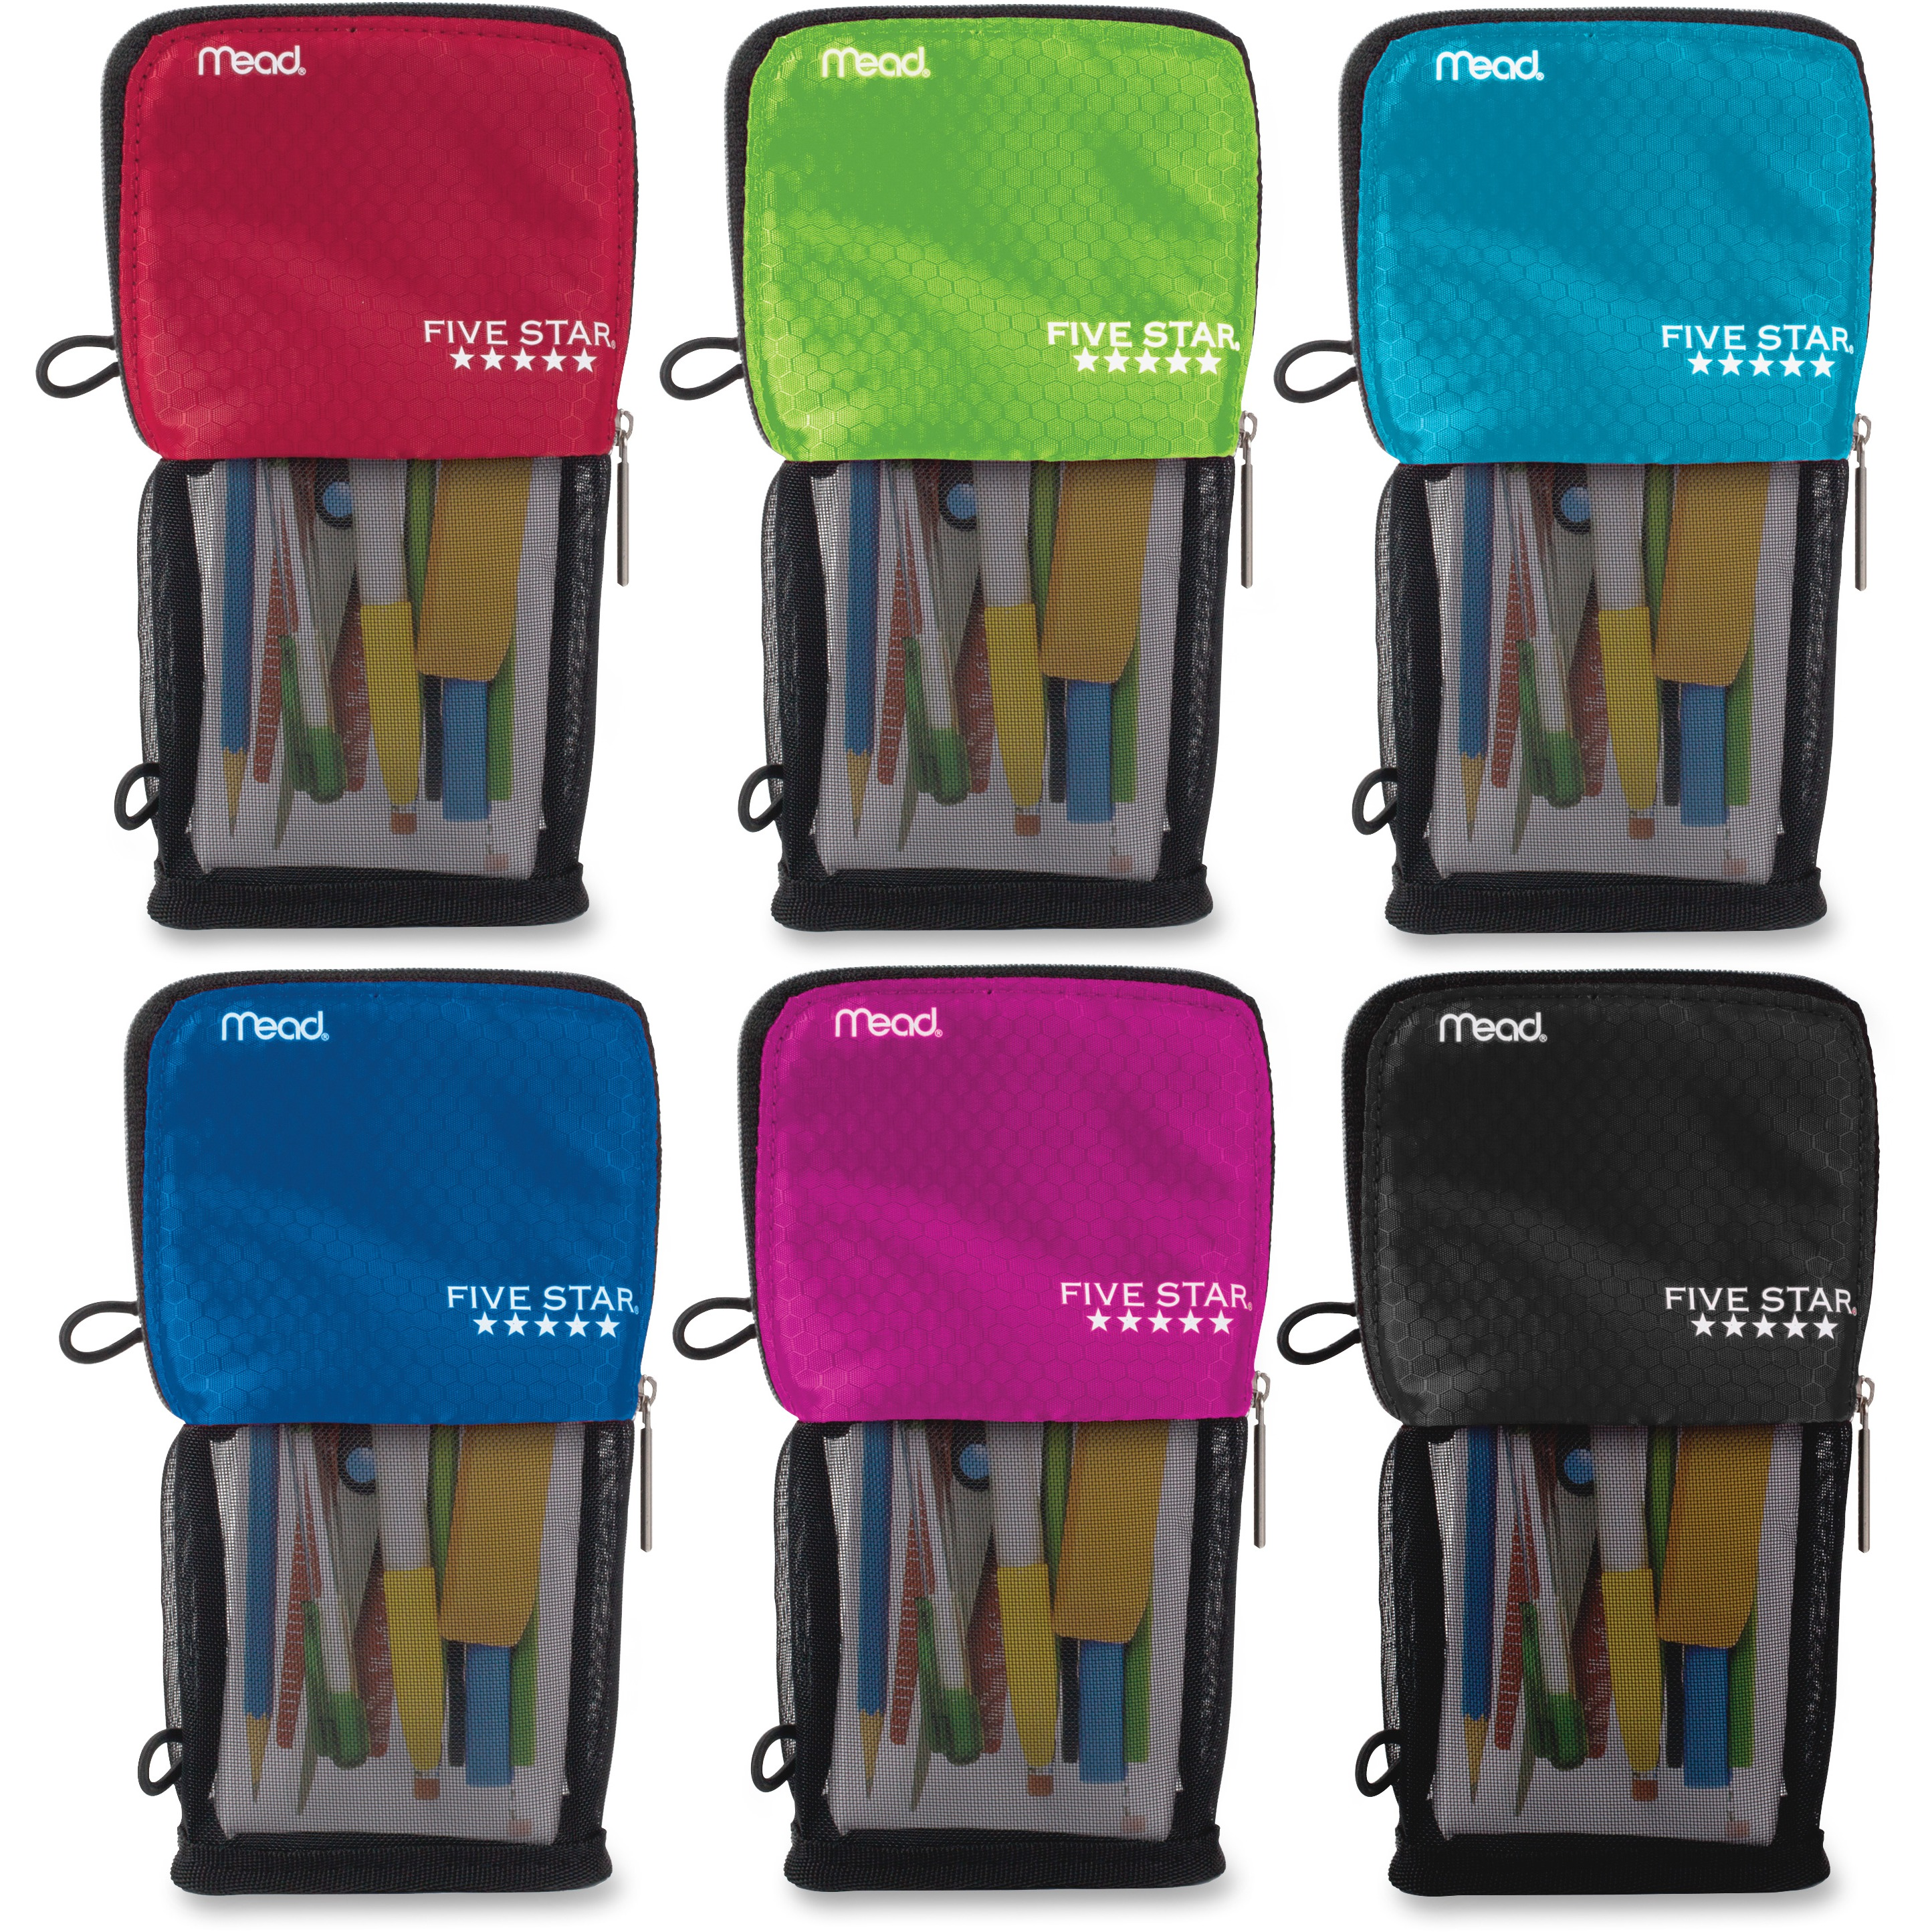 Five Star Stand 'N Store Pencil Pouch, Assorted Colors (50516)